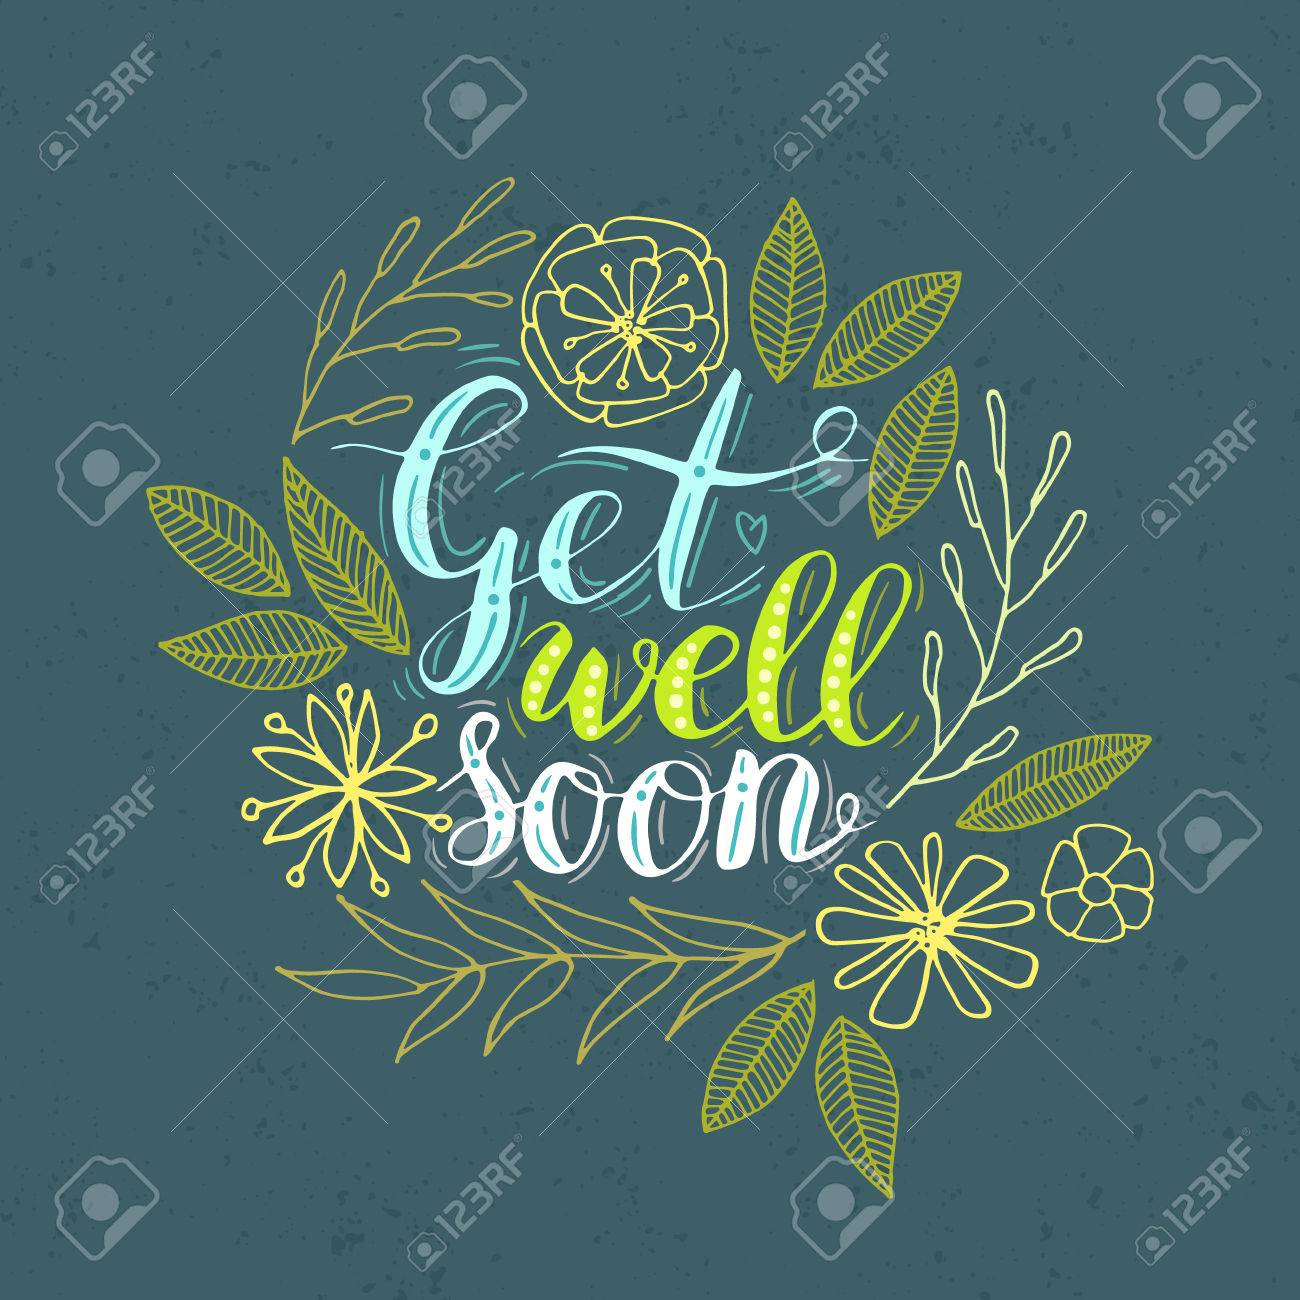 154 Feel Better Stock Illustrations Cliparts And Royalty Free Feel